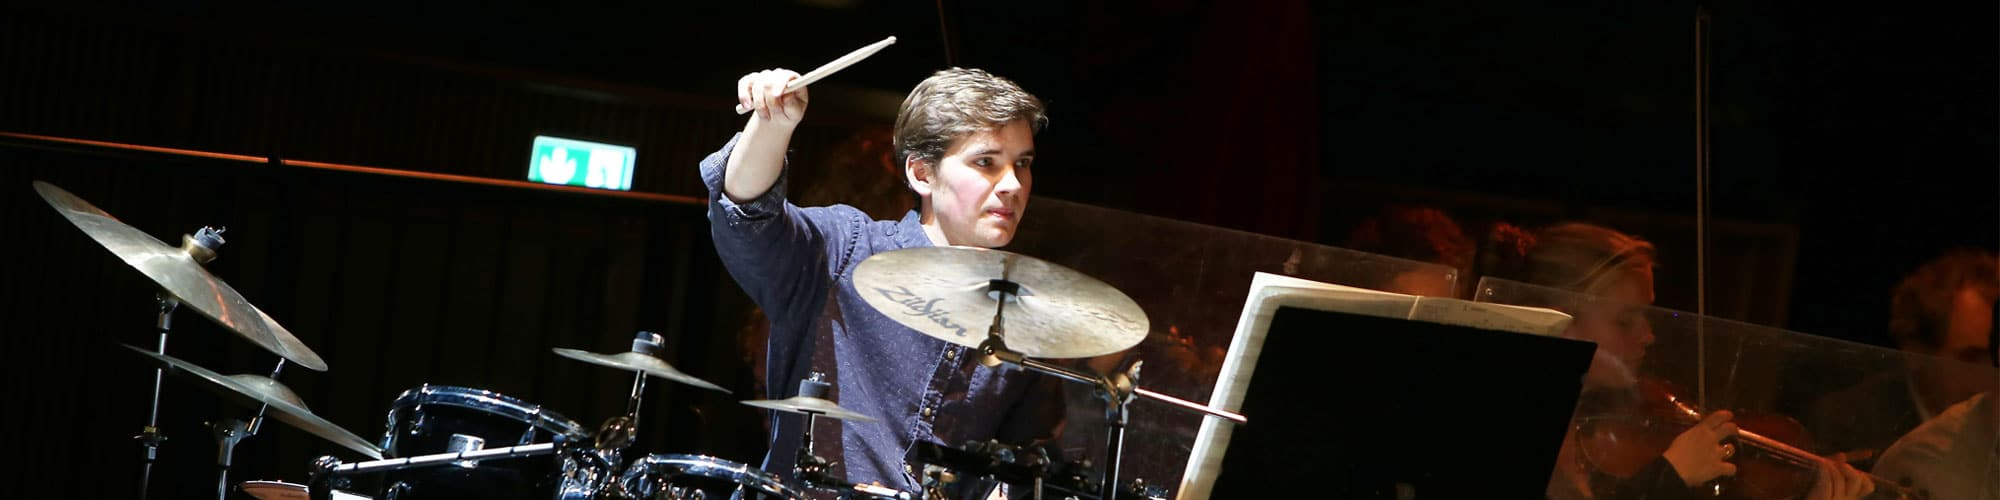 Christian Krogvold Lundqvist, percussion, at Rosendal Chamber Music Festival